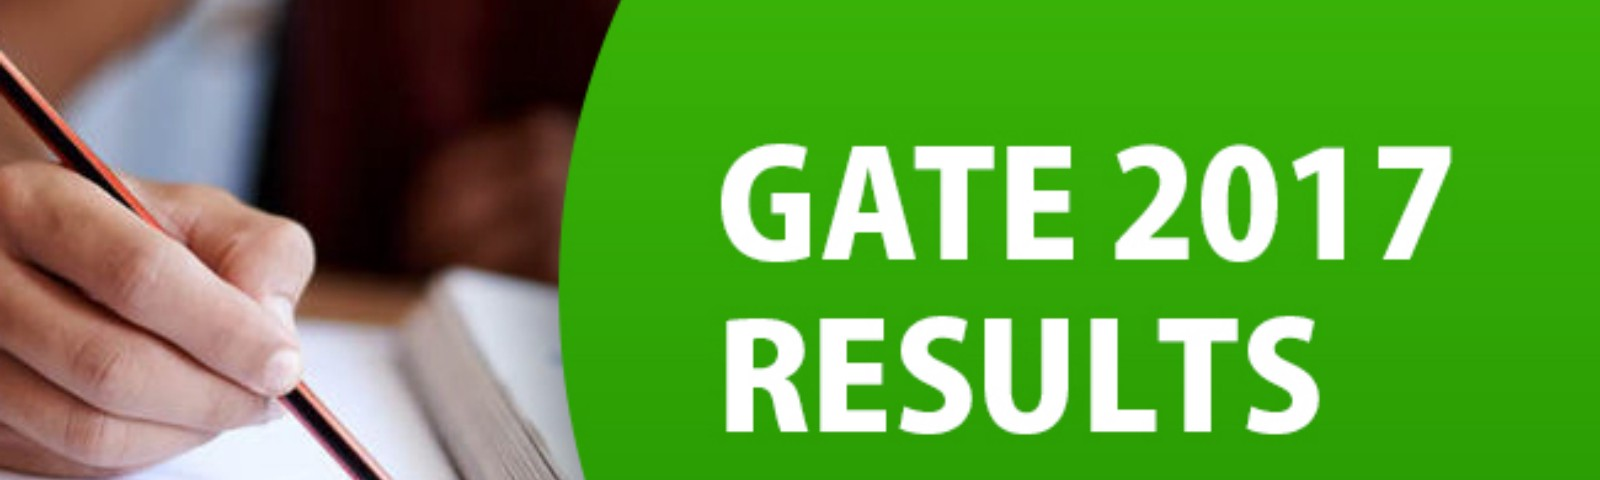 Gate 2017 Result EEE  Gate Electrical Results